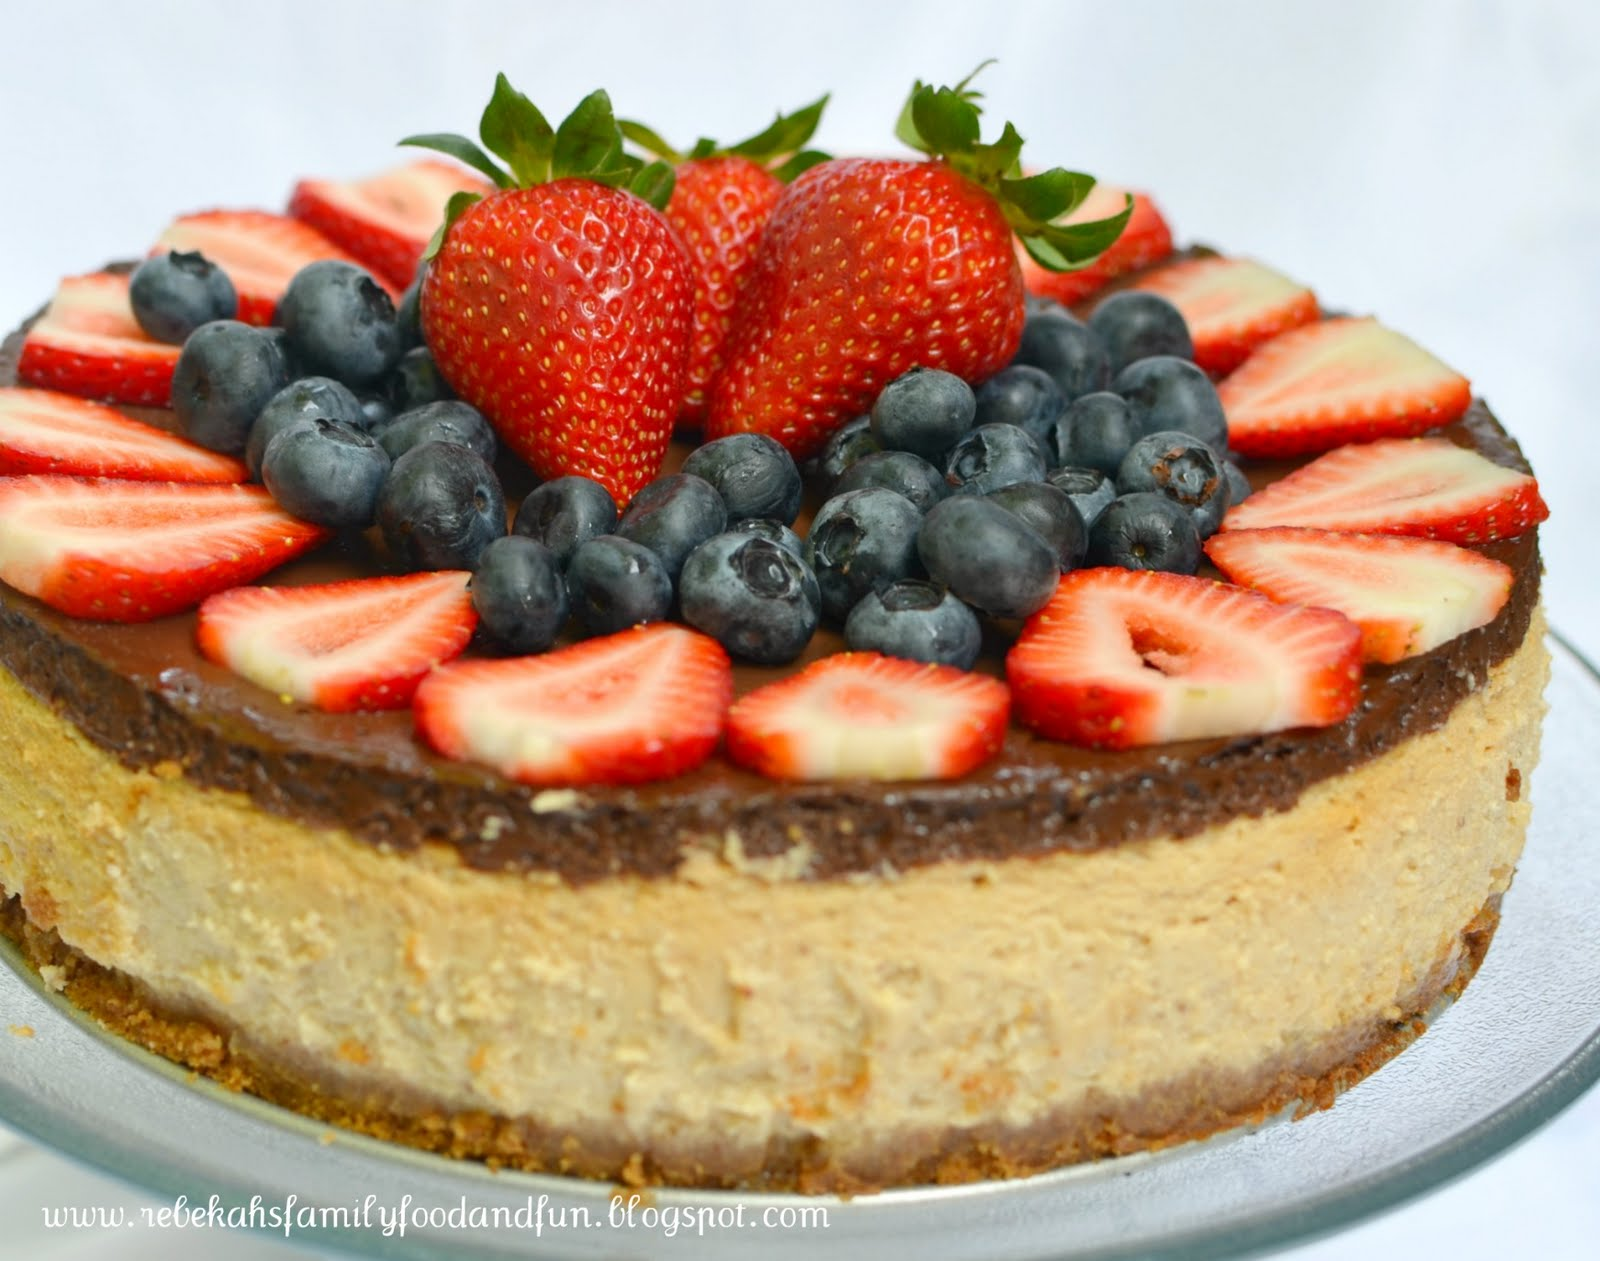 Family, Food, and Fun: Chocolate-Covered Strawberry Cheesecake